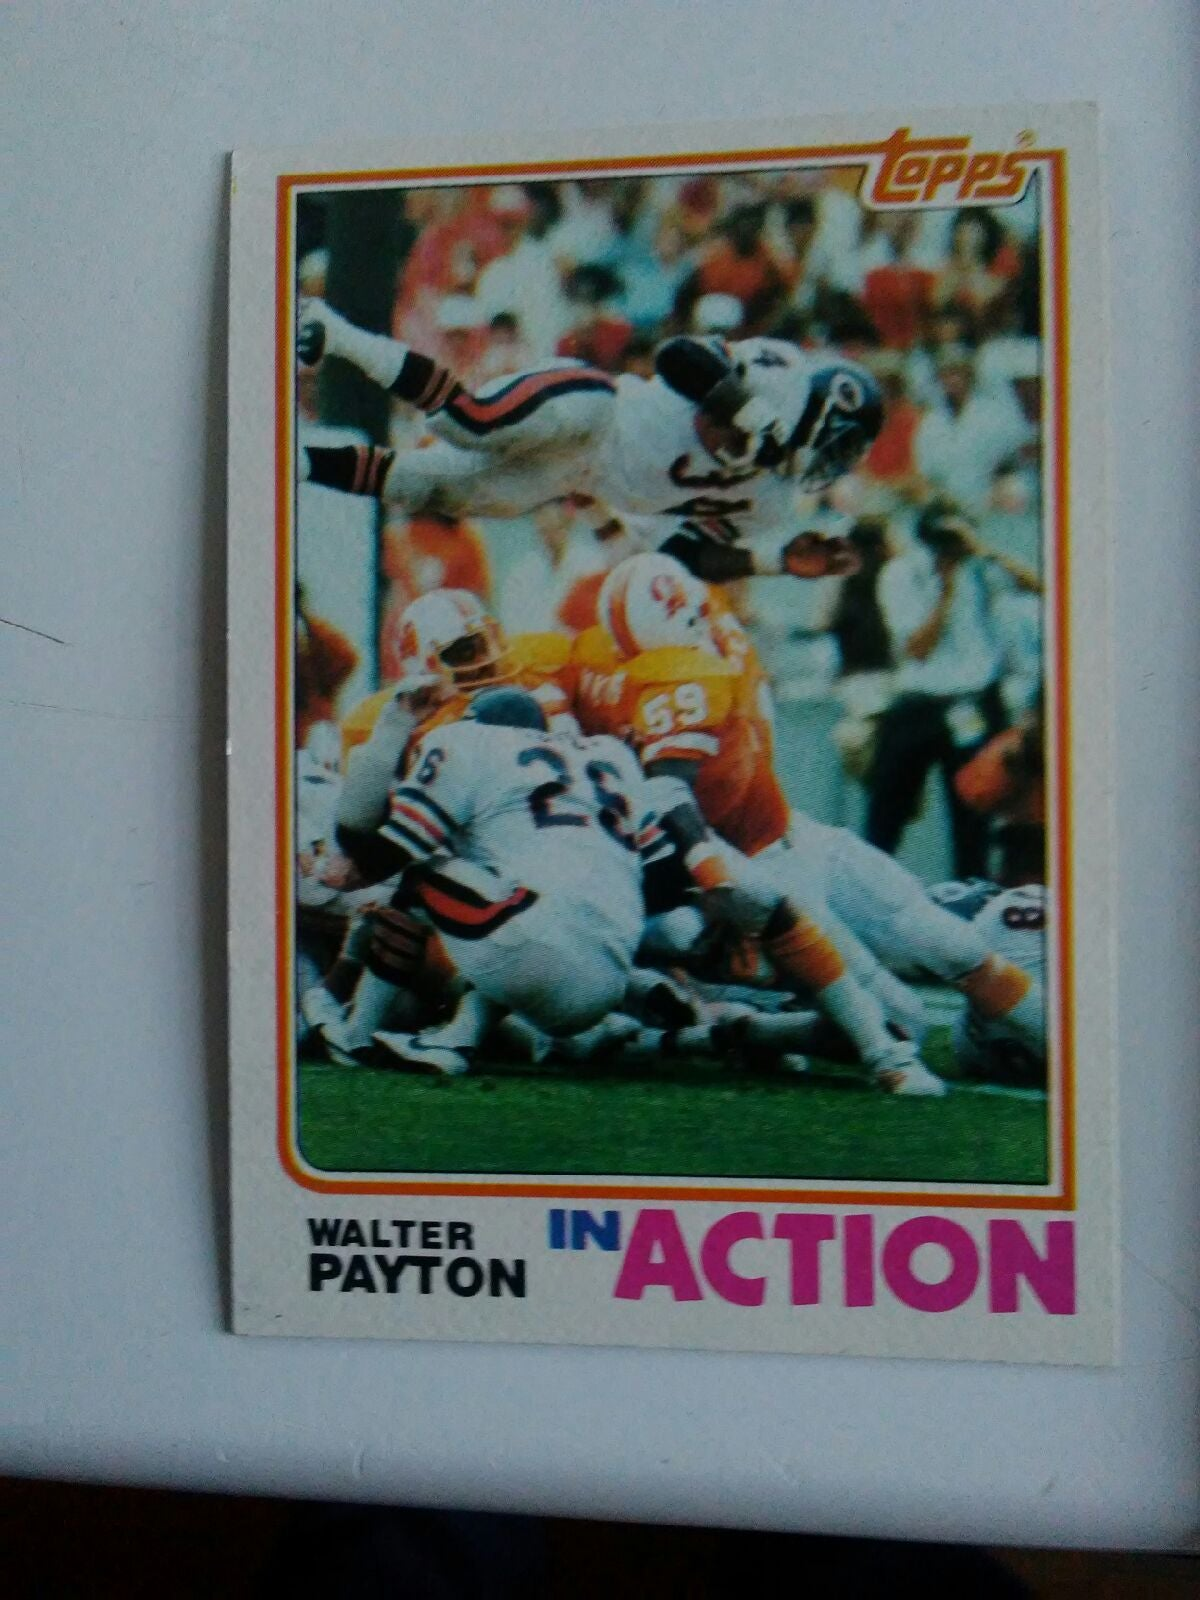 1982 Walter Payton In Action football ca